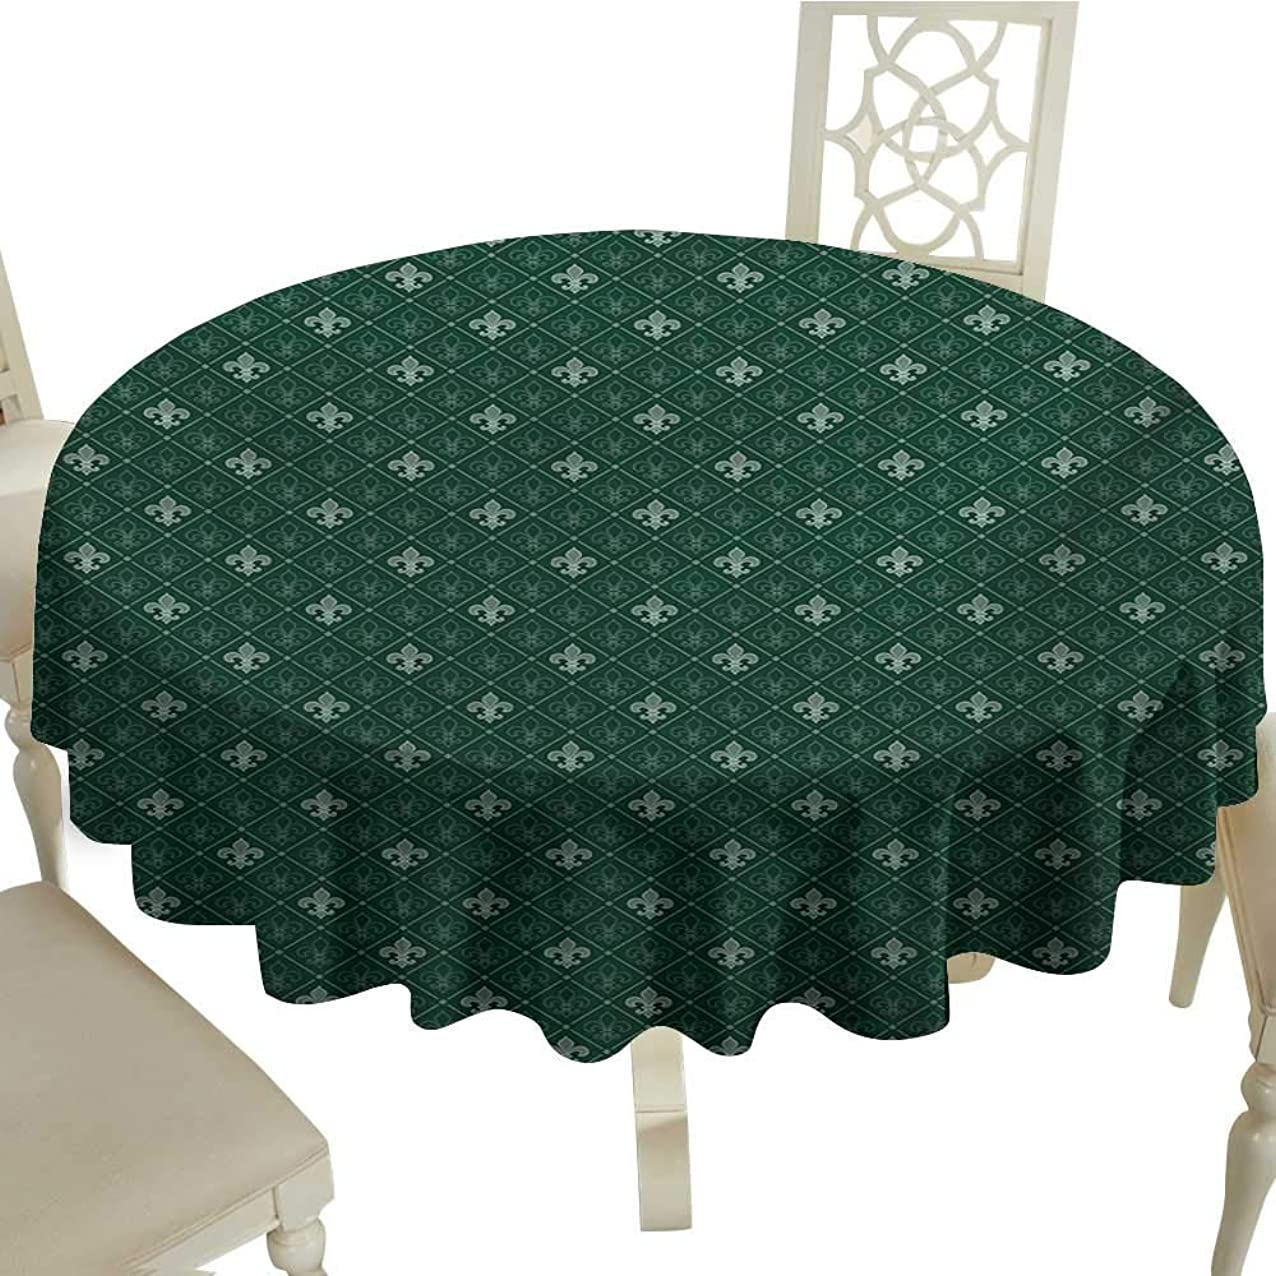 Cranekey Banquet Round Tablecloth 50 Inch Fleur De Lis,Ancient Baroque Pattern Medieval French Motifs Royal Ornate Classic,Hunter and Sage Green Great for,Holiday Dinner & More beceqbwoywtrr691